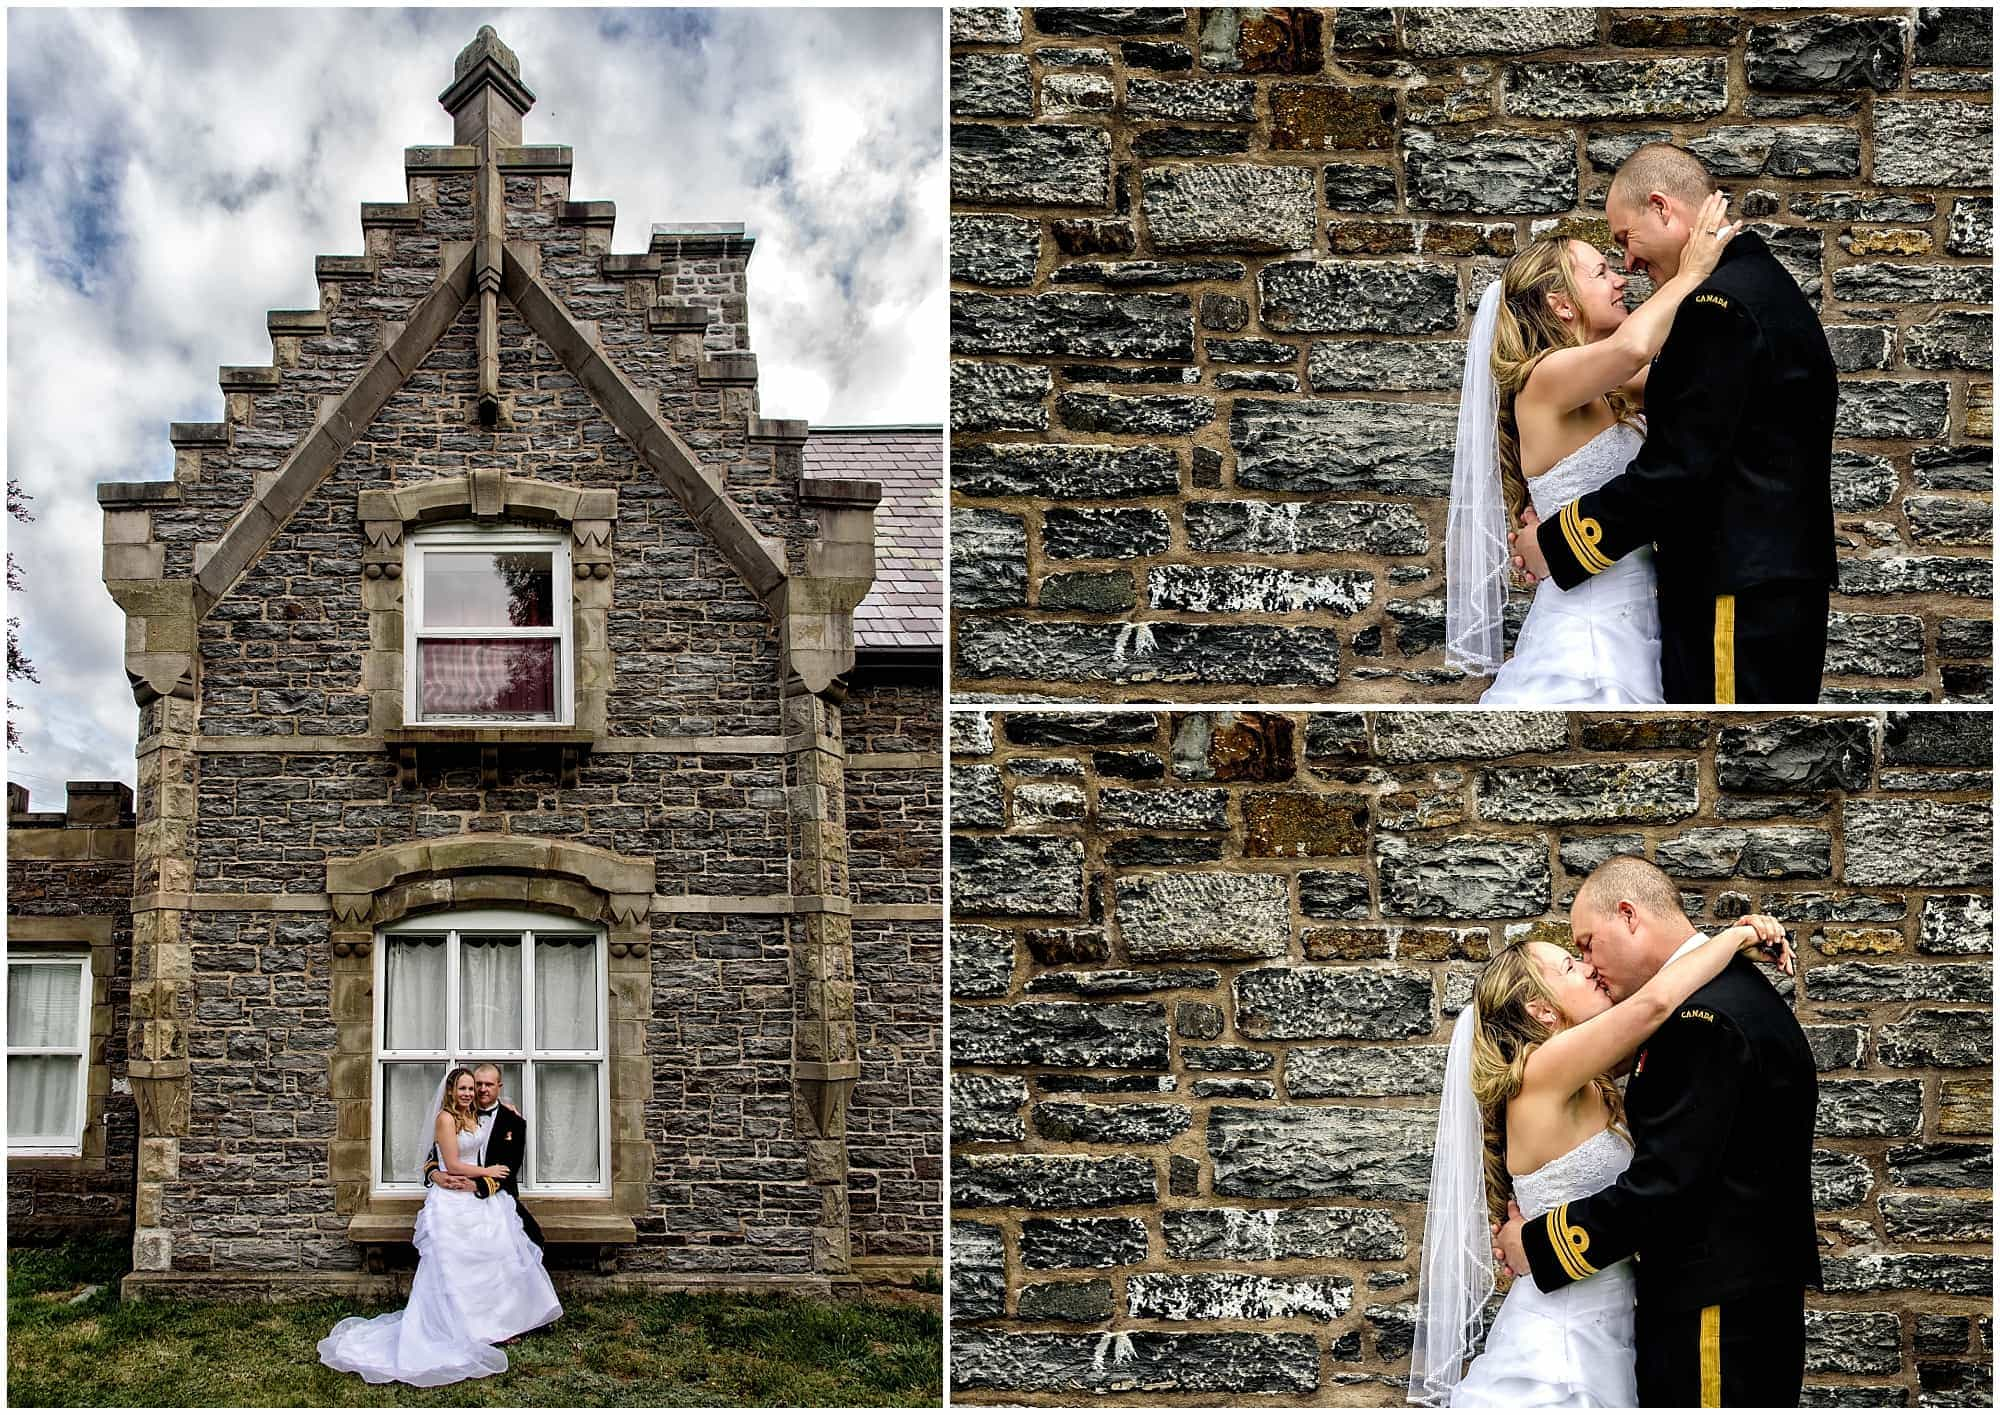 The bride and groom posing for wedding photos at the Gatehouse in Point Pleasant Park Halifax, NS.